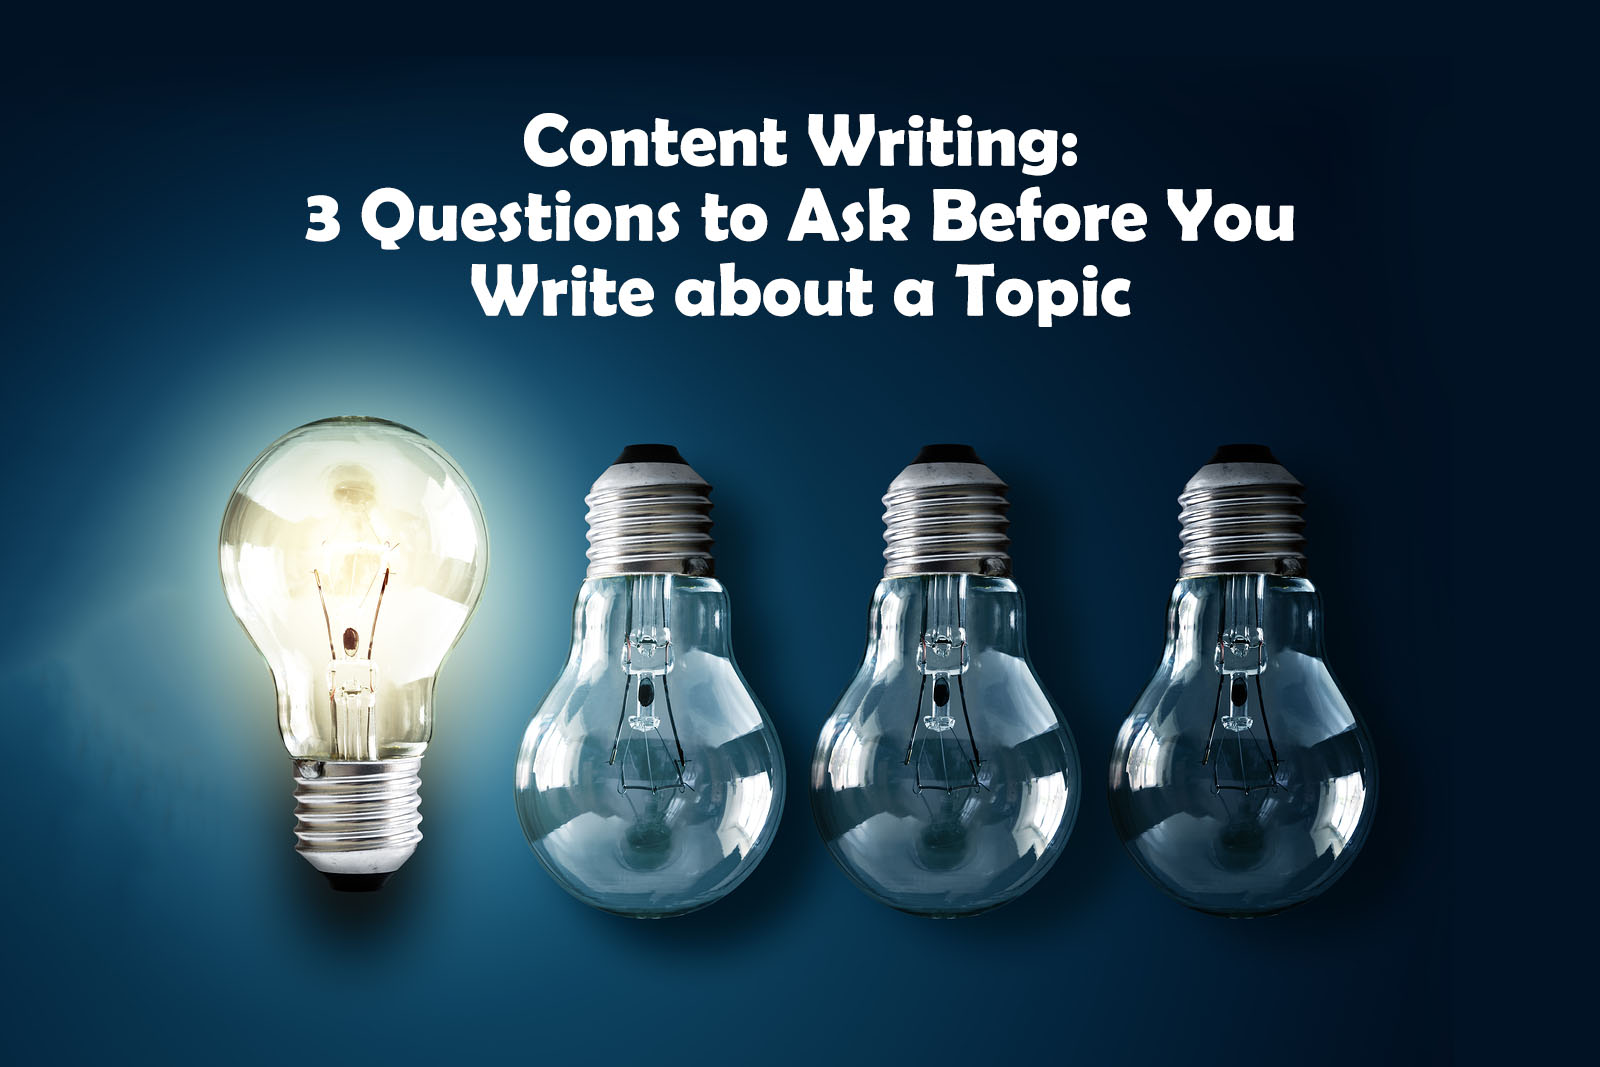 Content Writing: 3 Questions to Ask Before You Write about a Topic